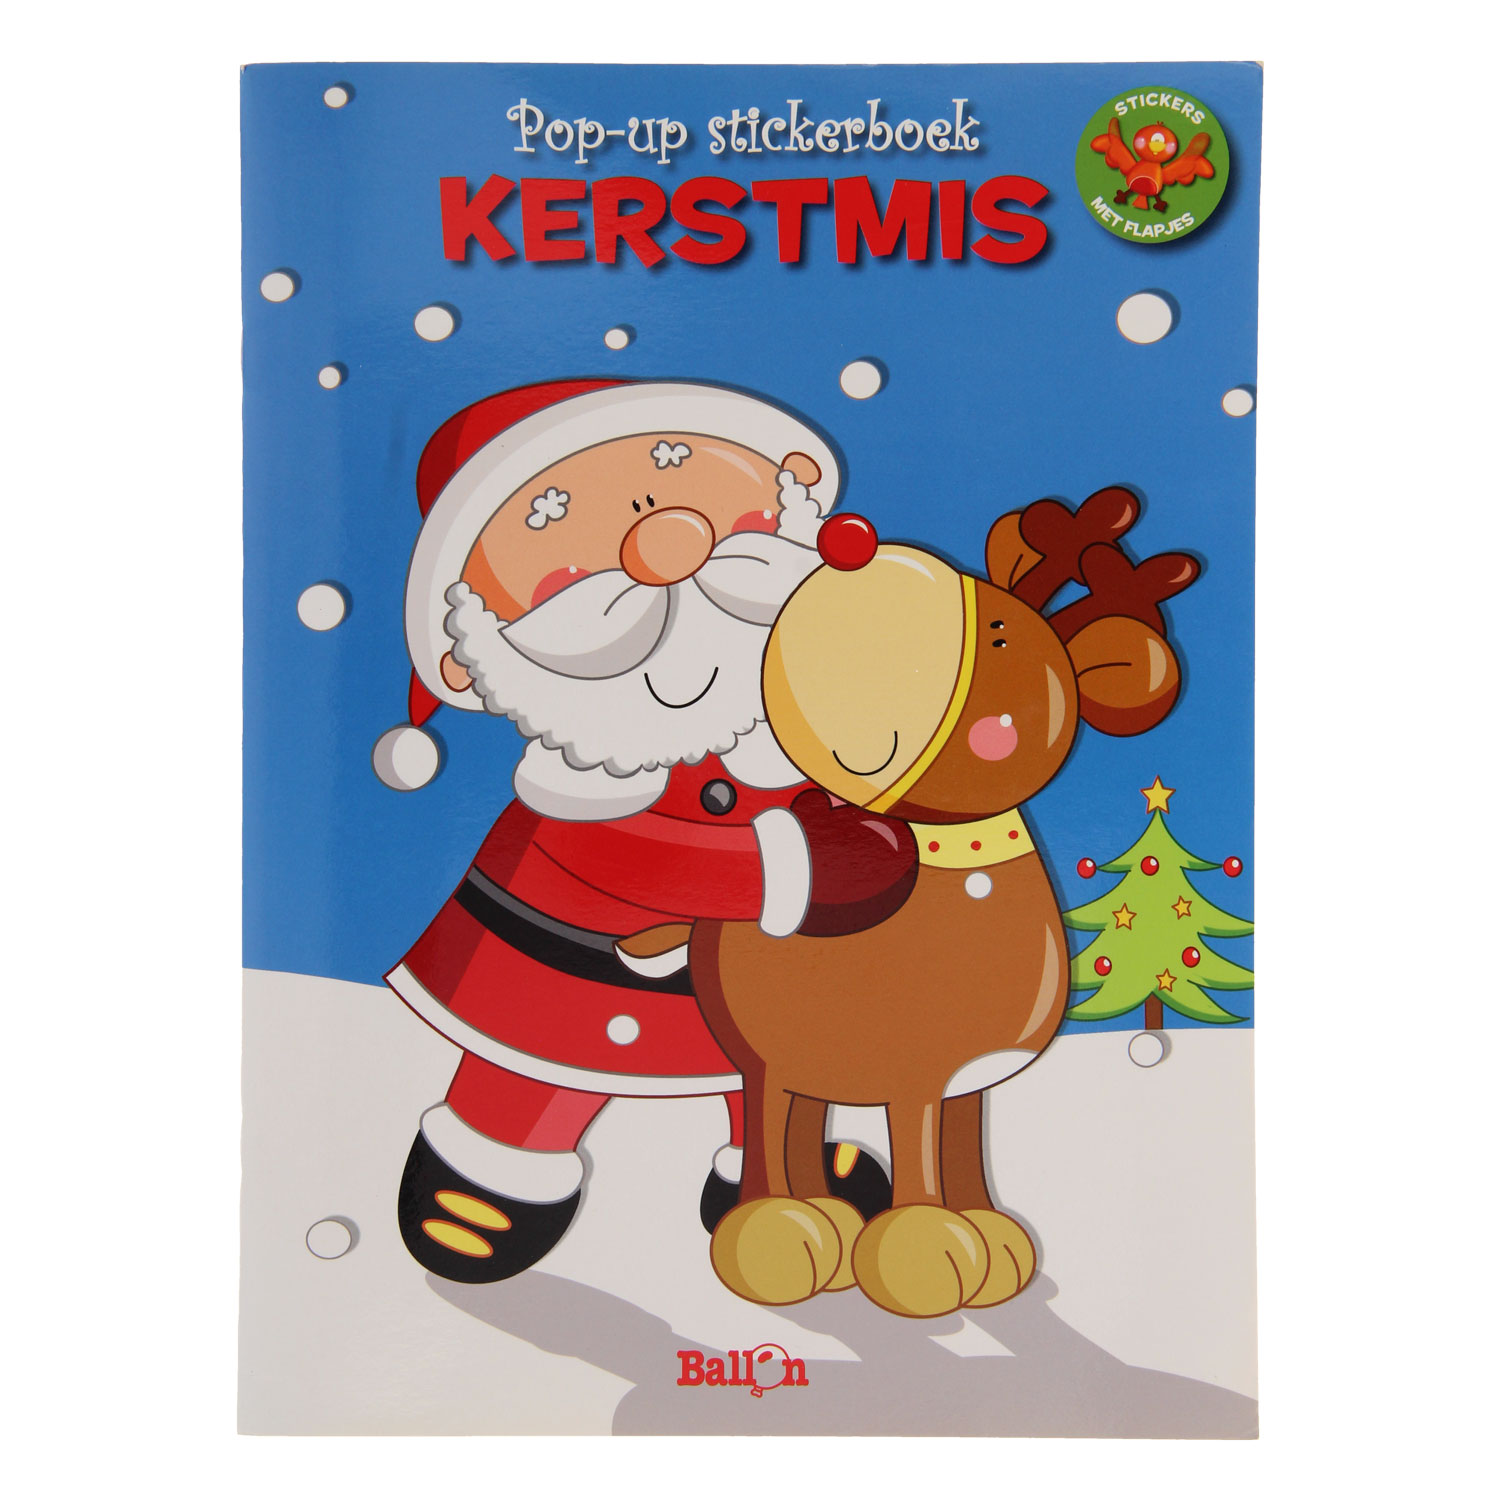 Pop-up Kleur- en Stickerboek Kerstmis